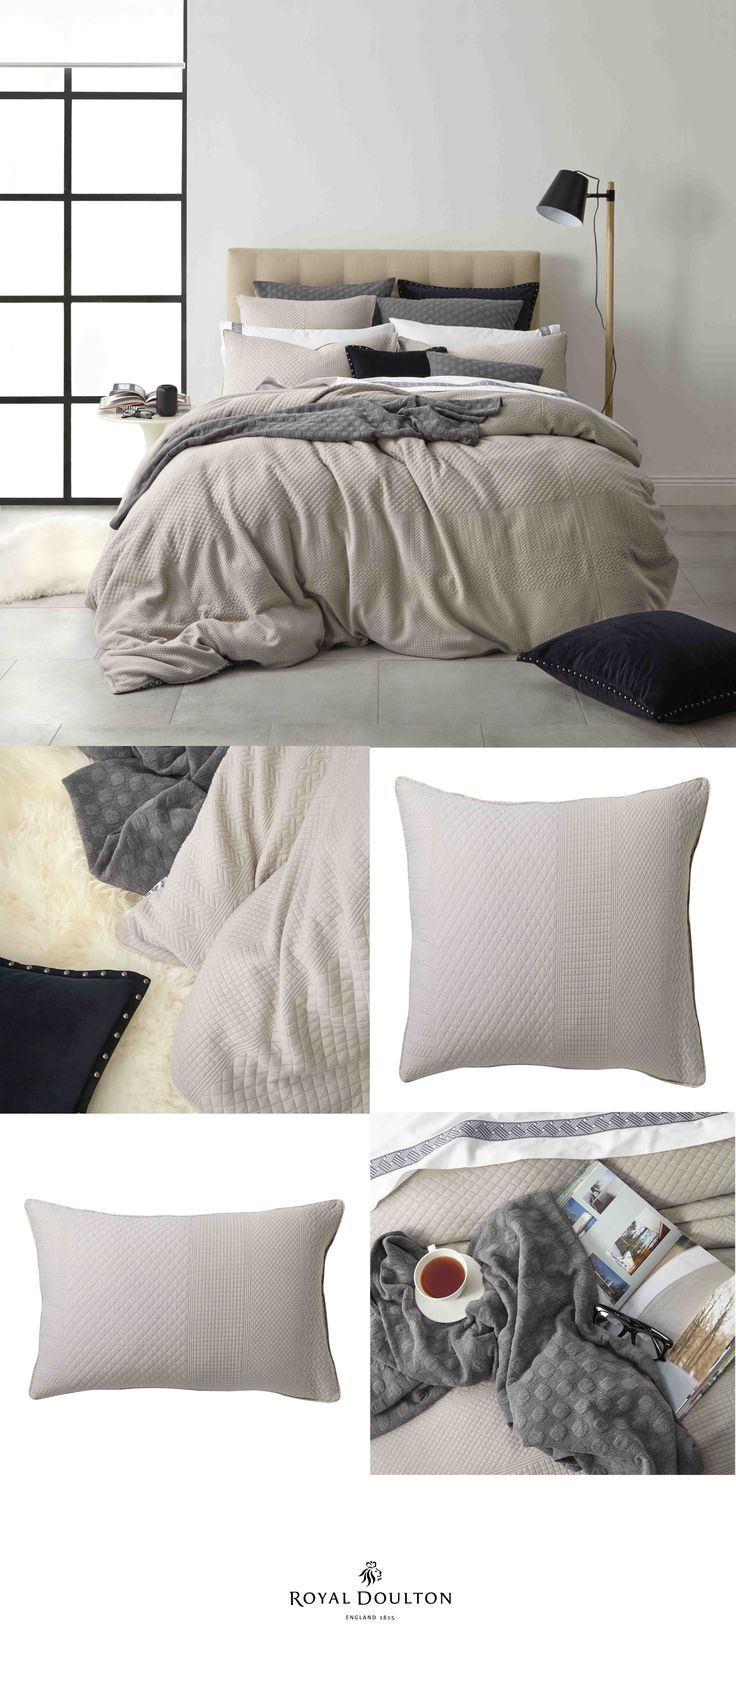 Royal Doulton - Adler Linen Quilt Cover Set ft. Habitat Concrete Throw - Bed Linen #linen #decor